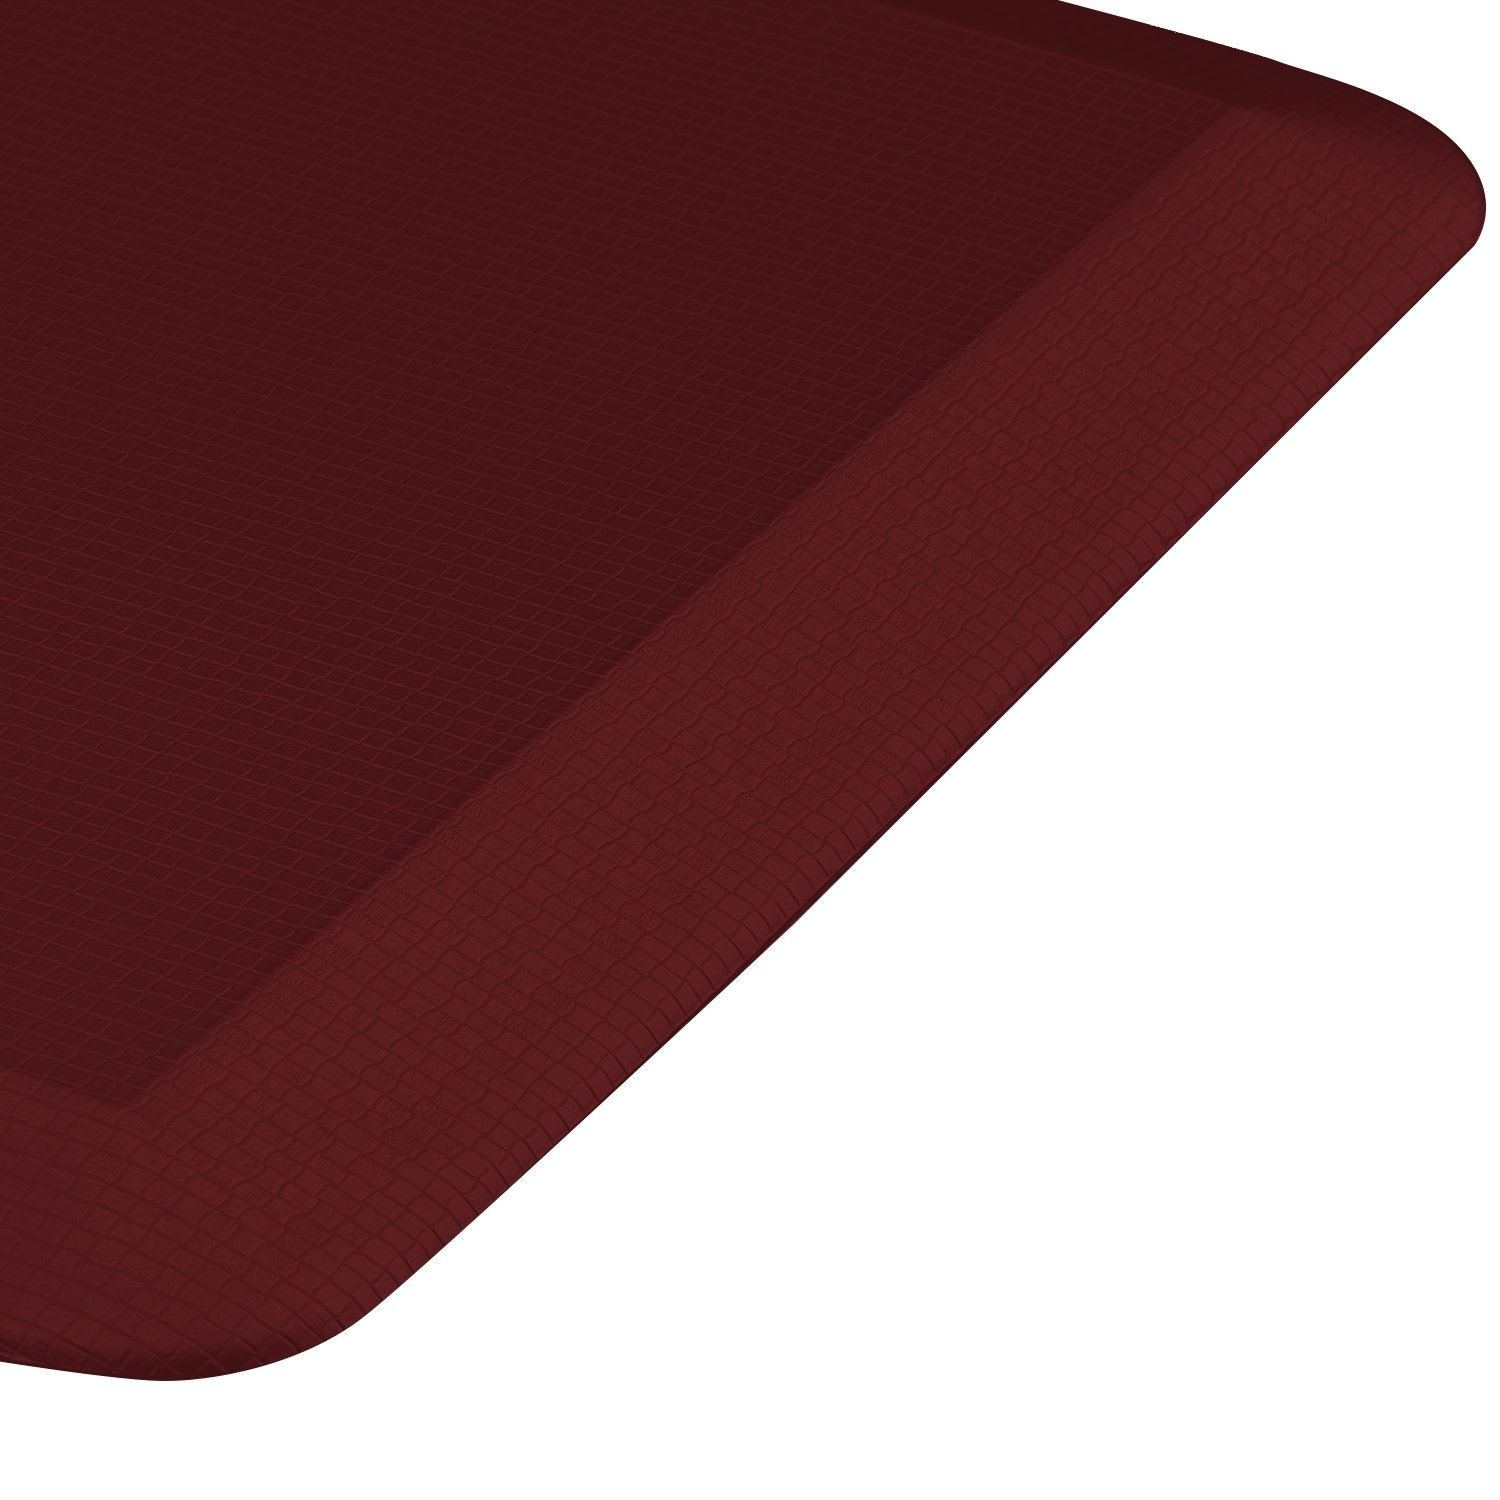 Royal Anti-Fatigue Comfort Mat - 20 in x 39 in x 3/4 in - Ergonomic Multi Surface, Non-Slip - Waterproof All-Purpose Luxurious Comfort - For Kitchen, Bathroom or Workstations - Burgundy by Royal (Image #3)